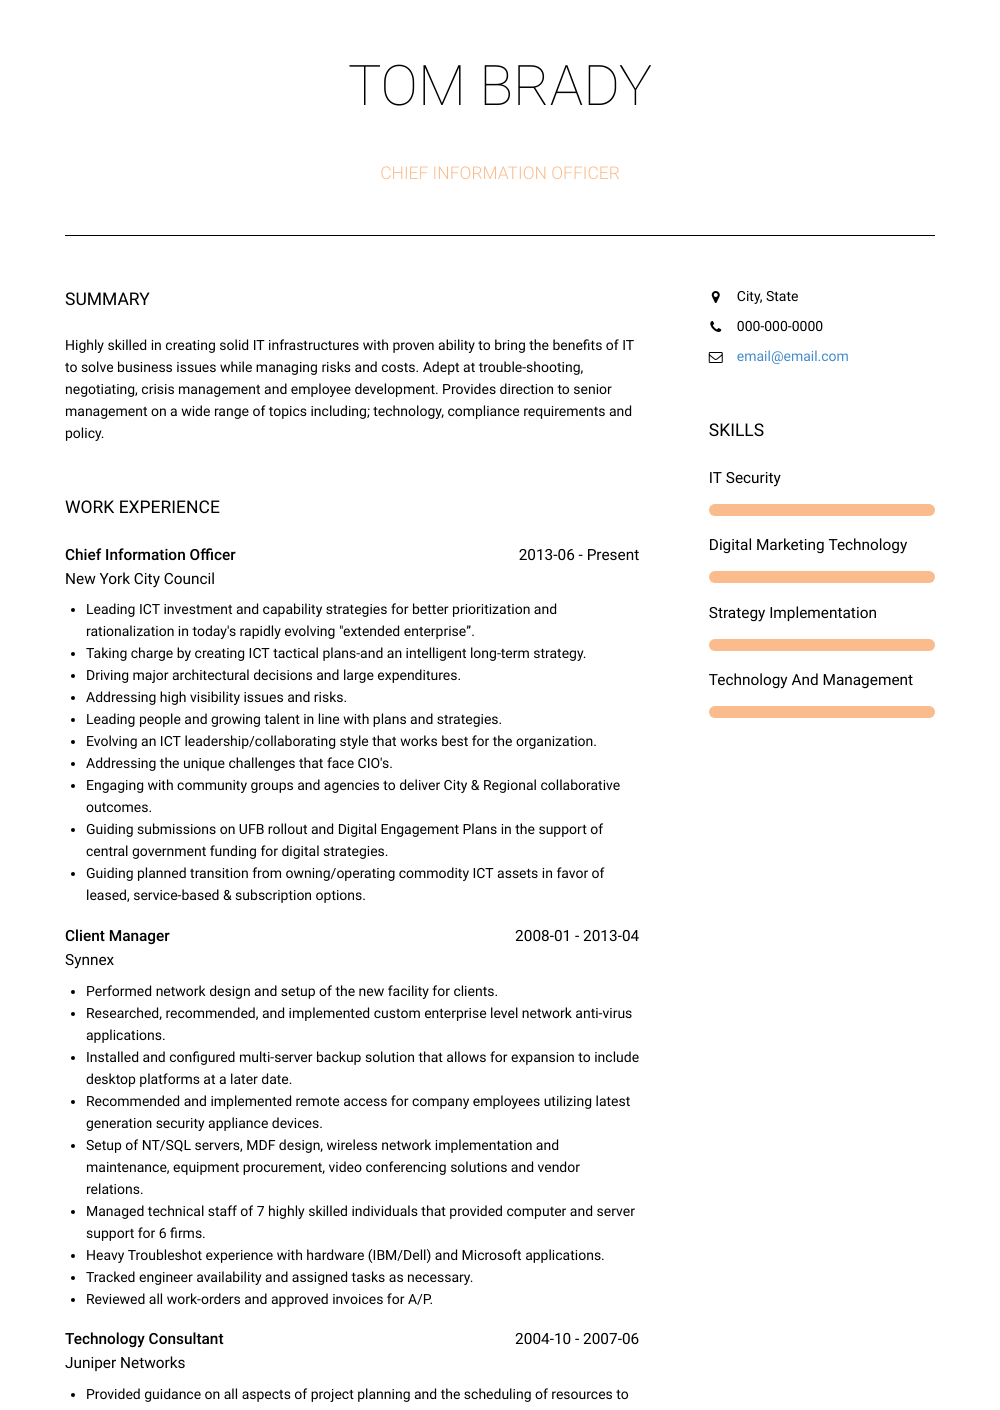 Chief Information Officer Resume Sample and Template